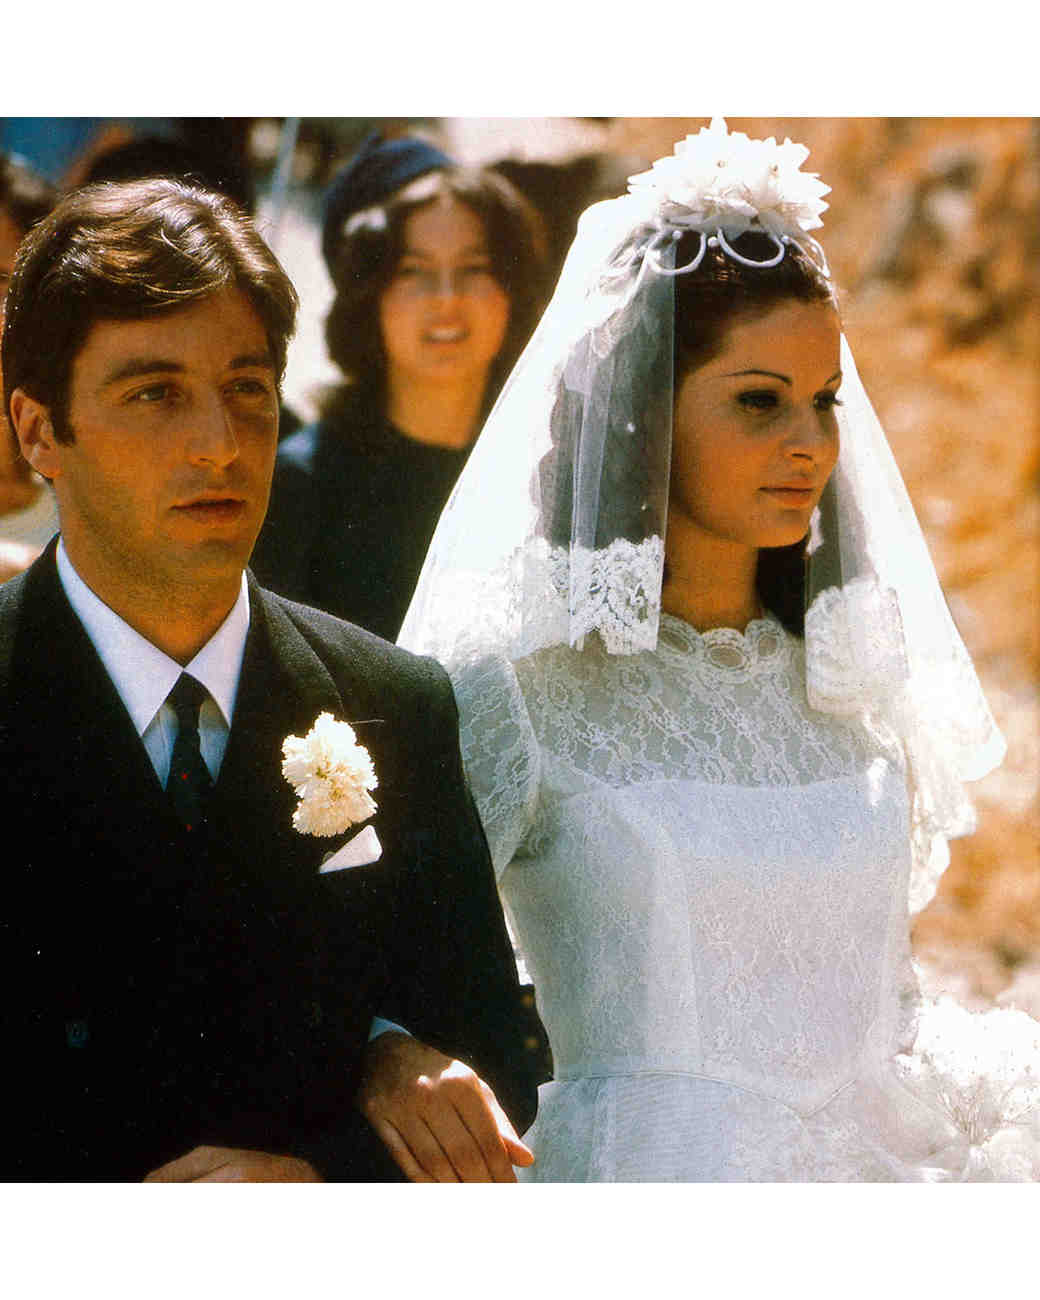 movie-wedding-dresses-the-godfather-simonetta-stefanelli-0316.jpg